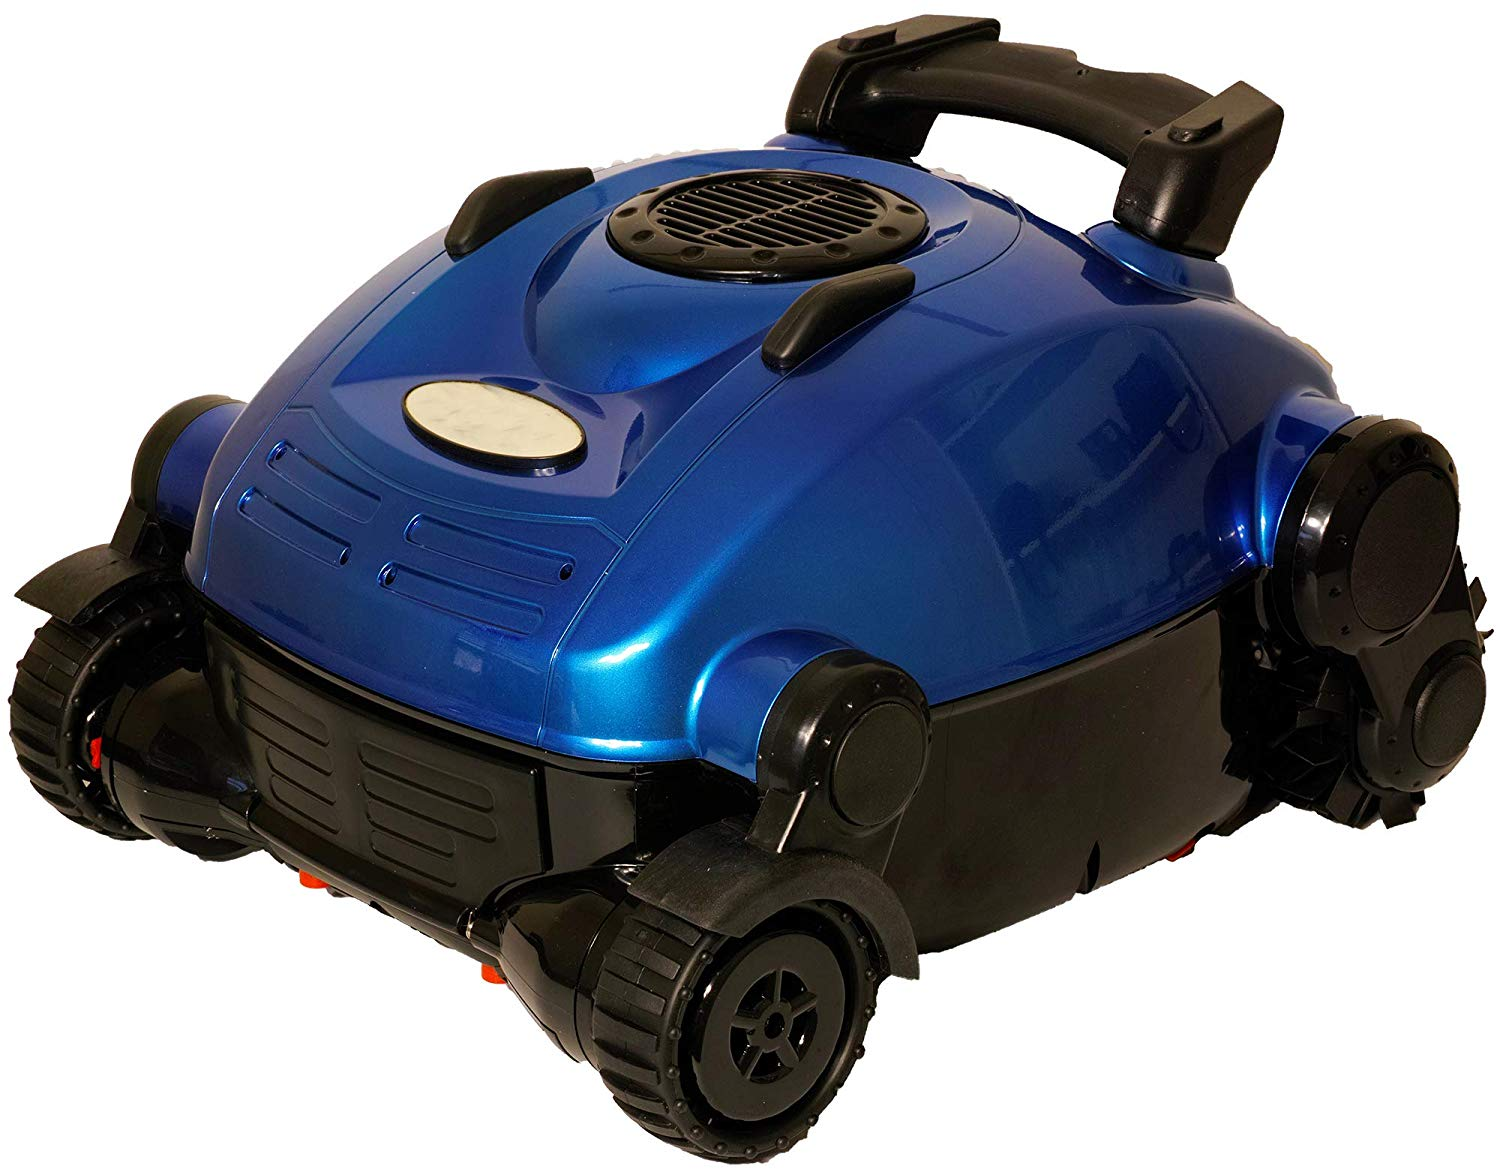 Nu Cobalt NC52 Wall Climber Smart Logic Robotic Pool Cleaner